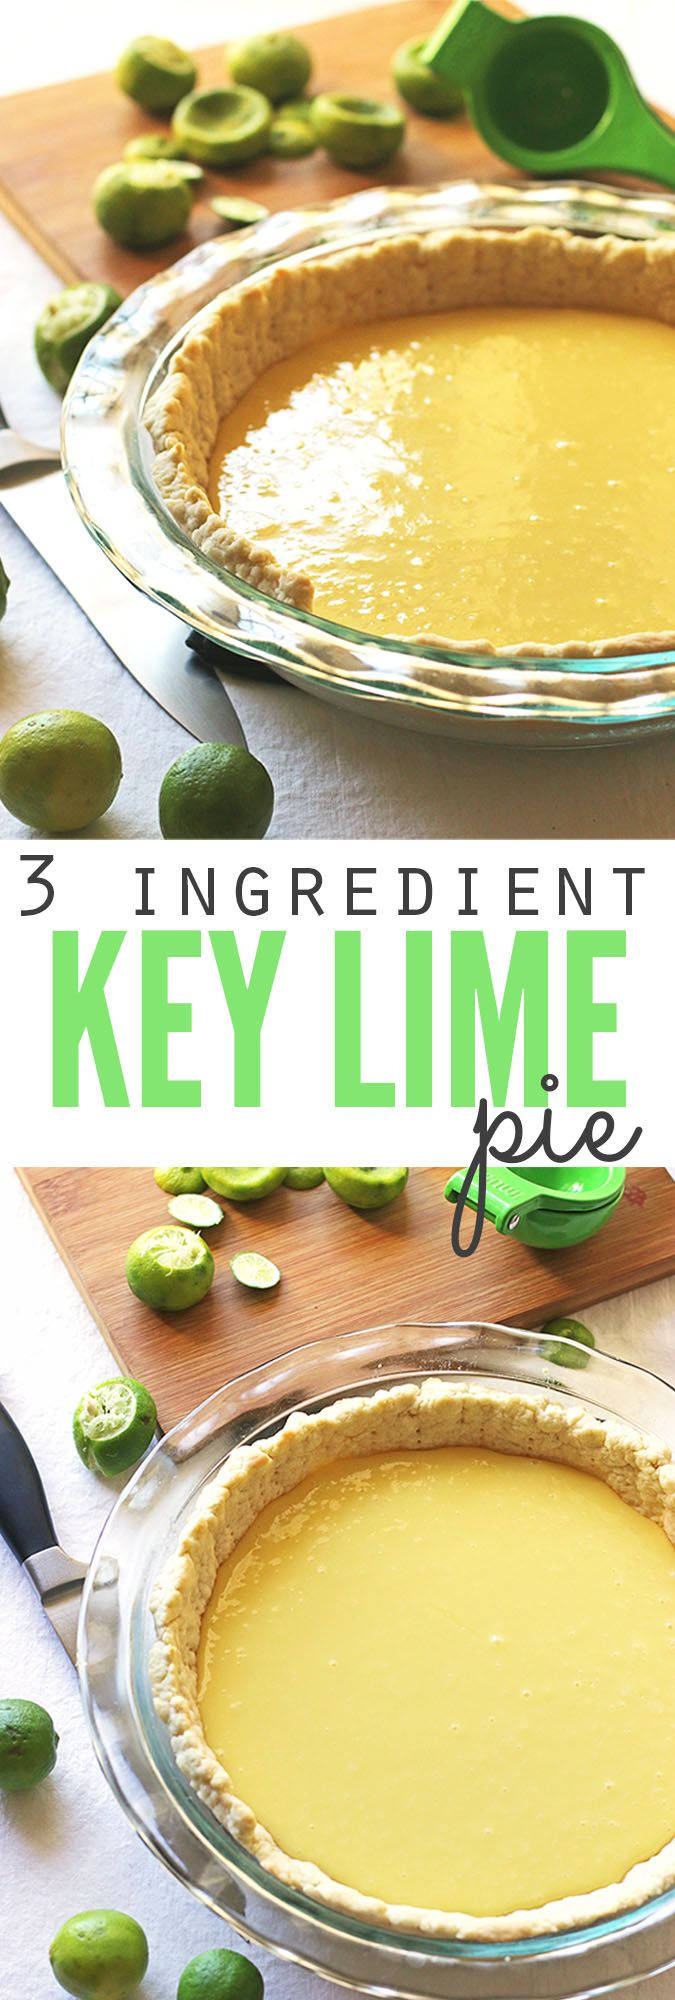 So simple, easy and delicious... 3 ingredient key lime pie recipe made using fresh key limes! If you're looking looking for the perfect summer recipe with a tang, you've found it! :: DontWastetheCrumbs.com